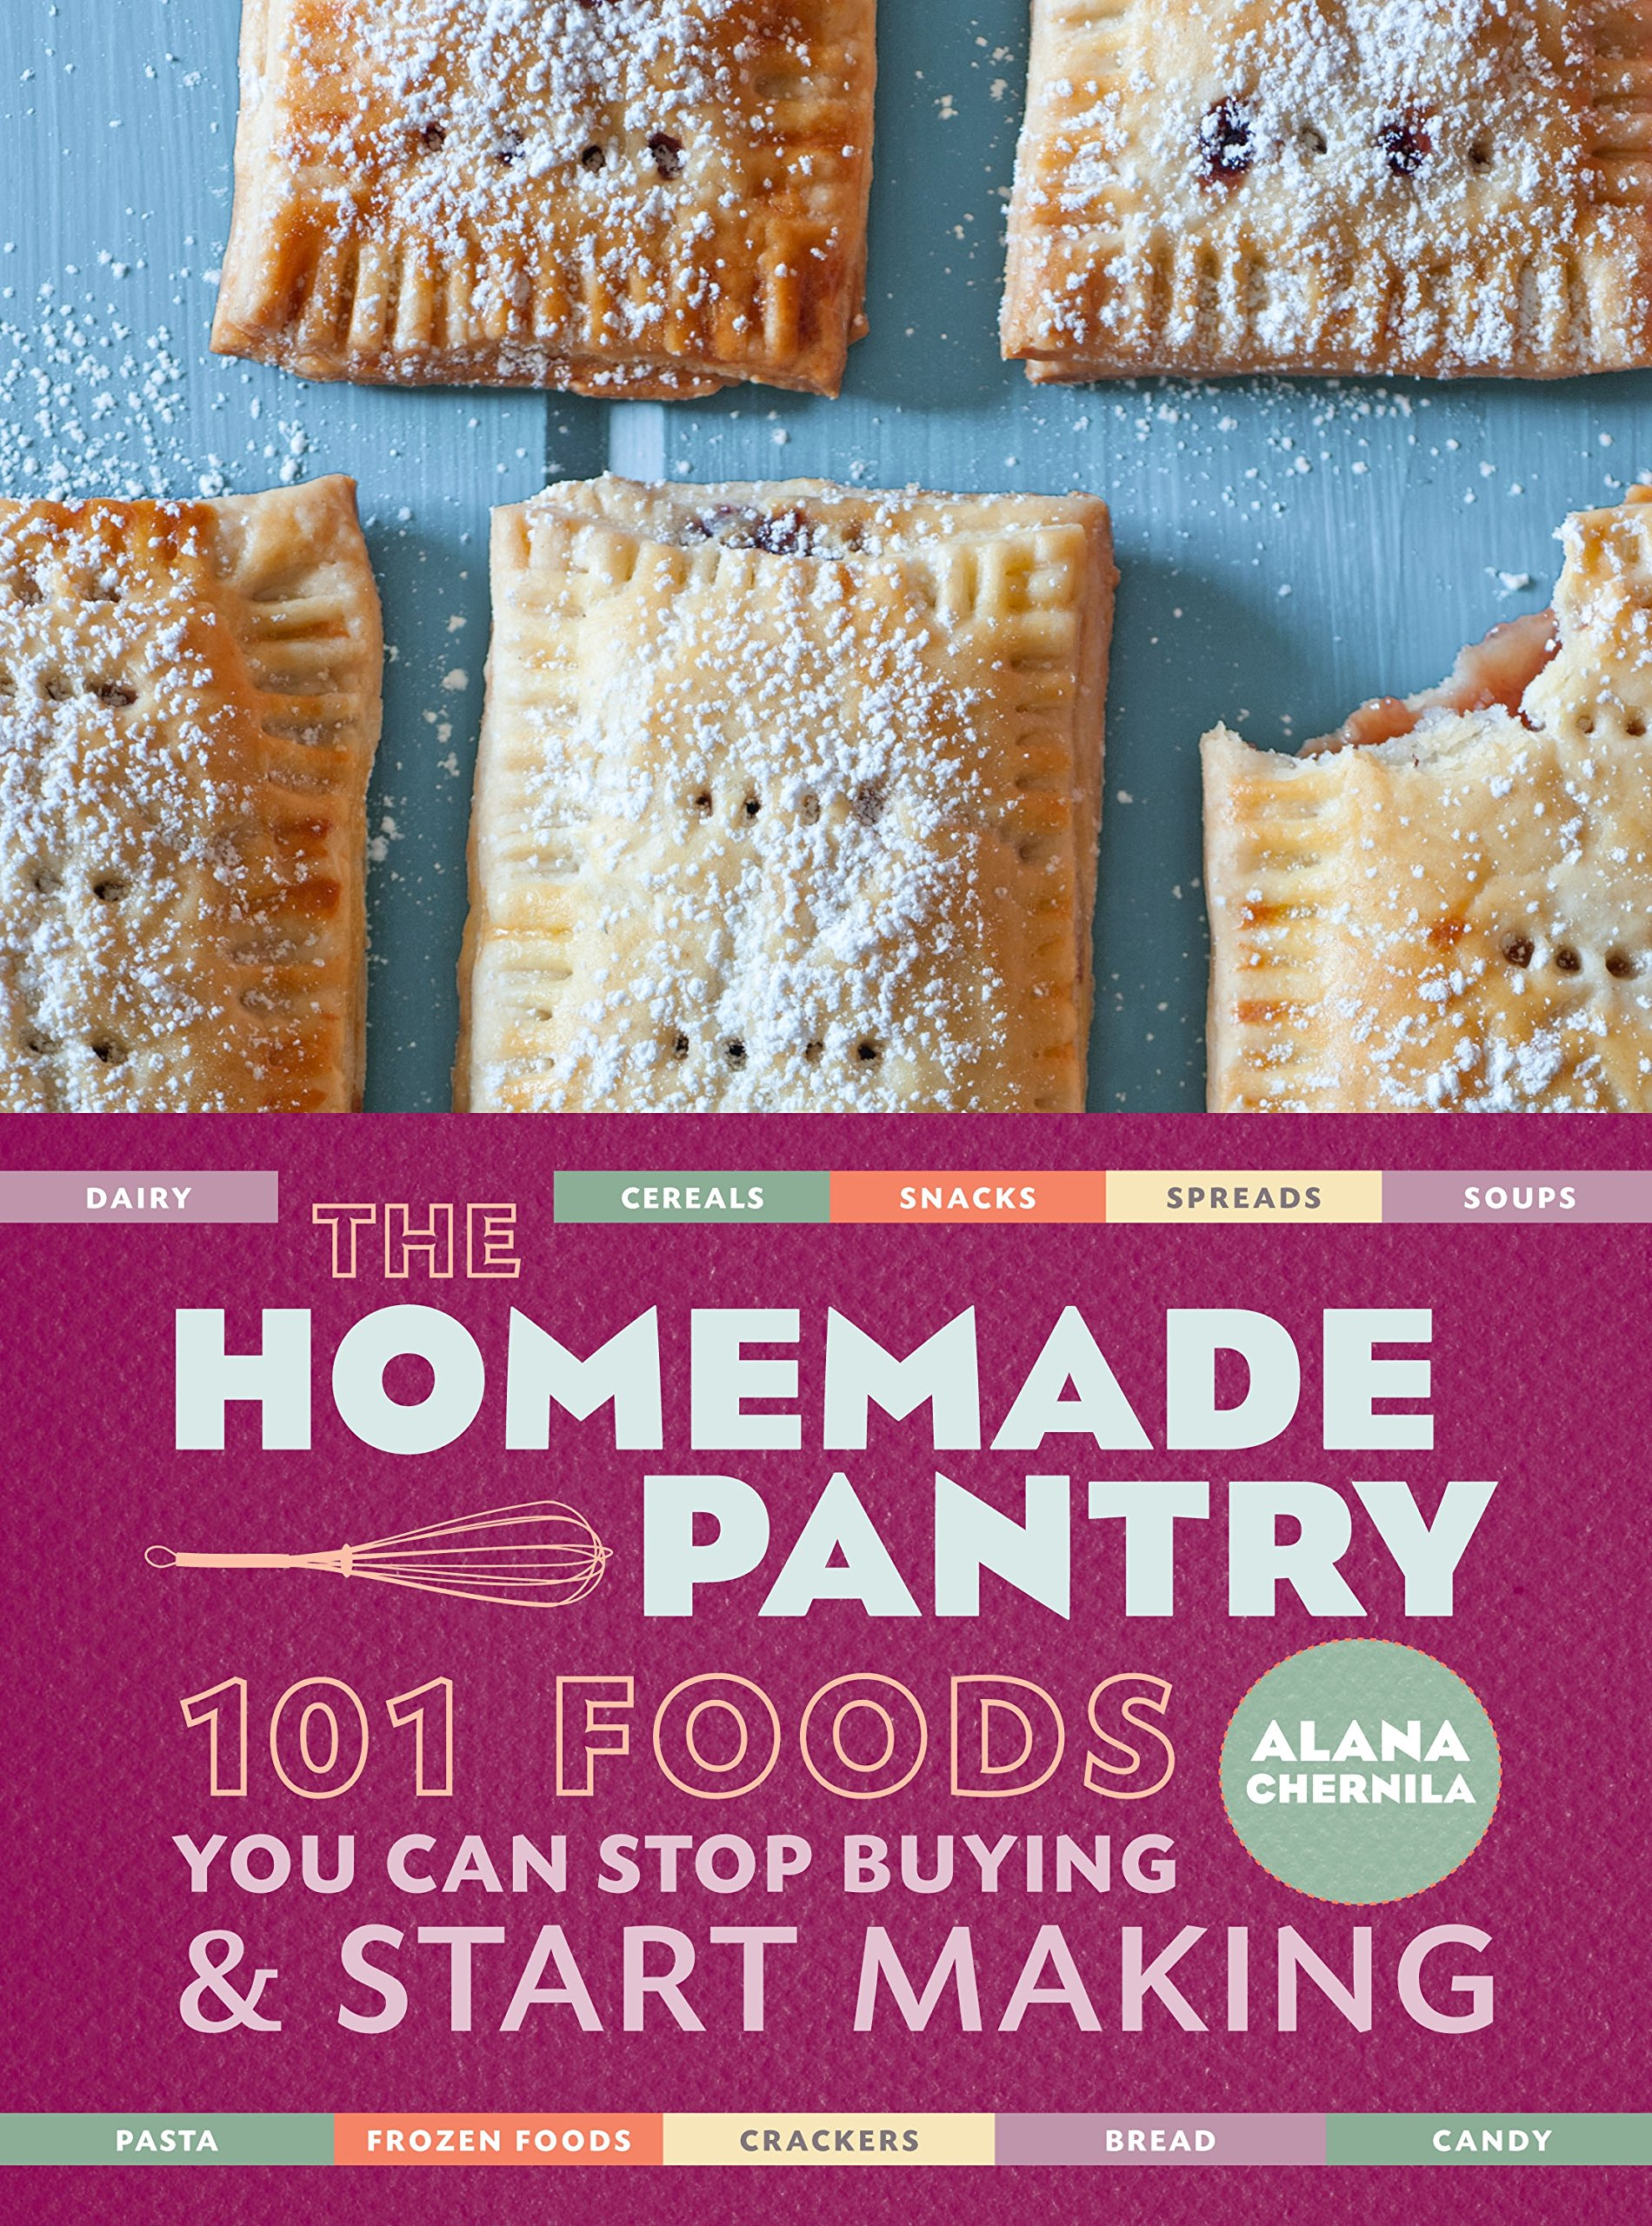 Homemade Pantry Foods Buying Making product image